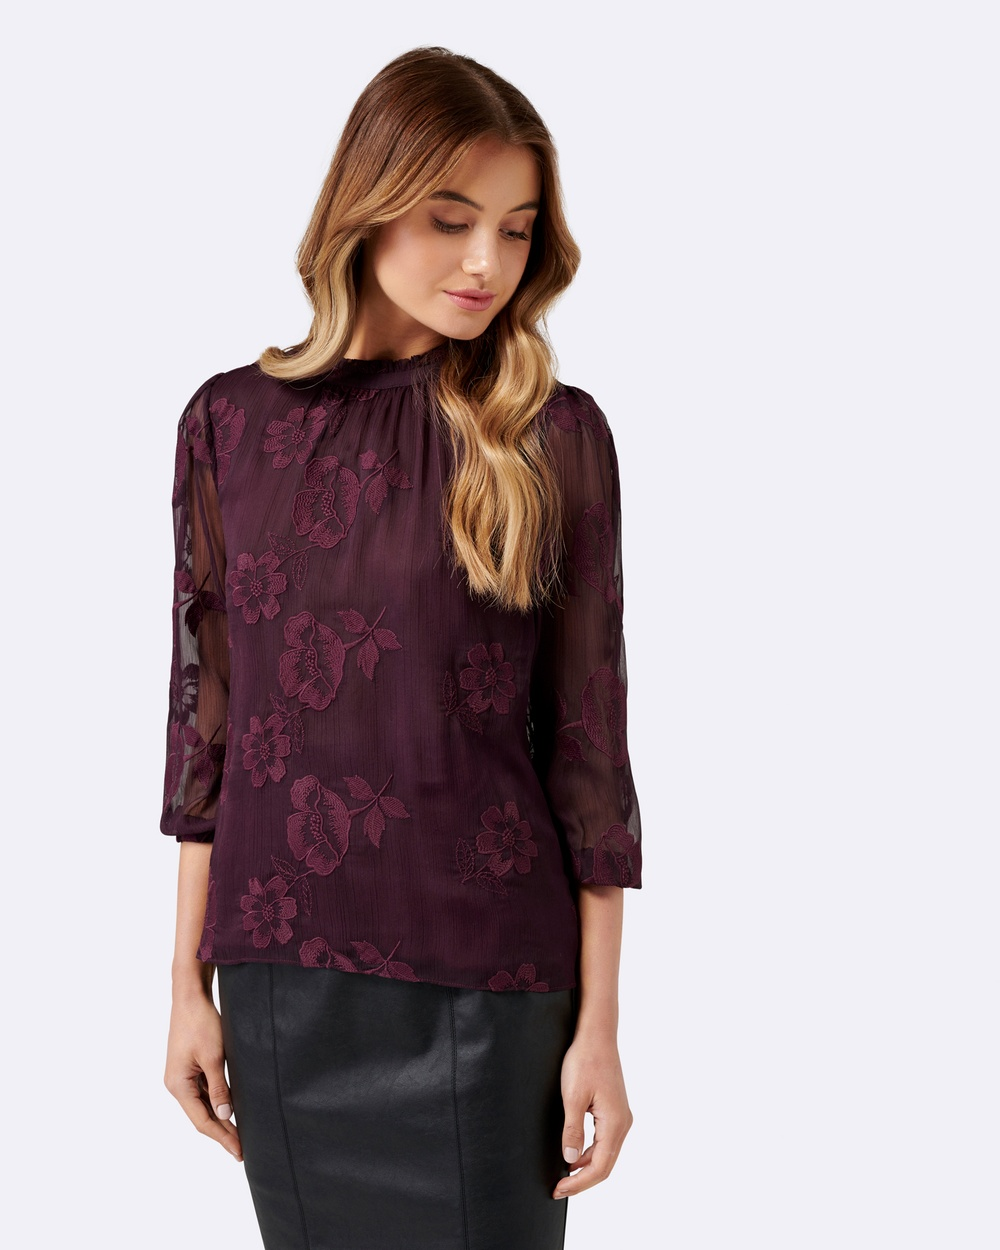 Forever New Tanya Textured Blouson Blouse Tops Vintage Grape Tanya Textured Blouson Blouse